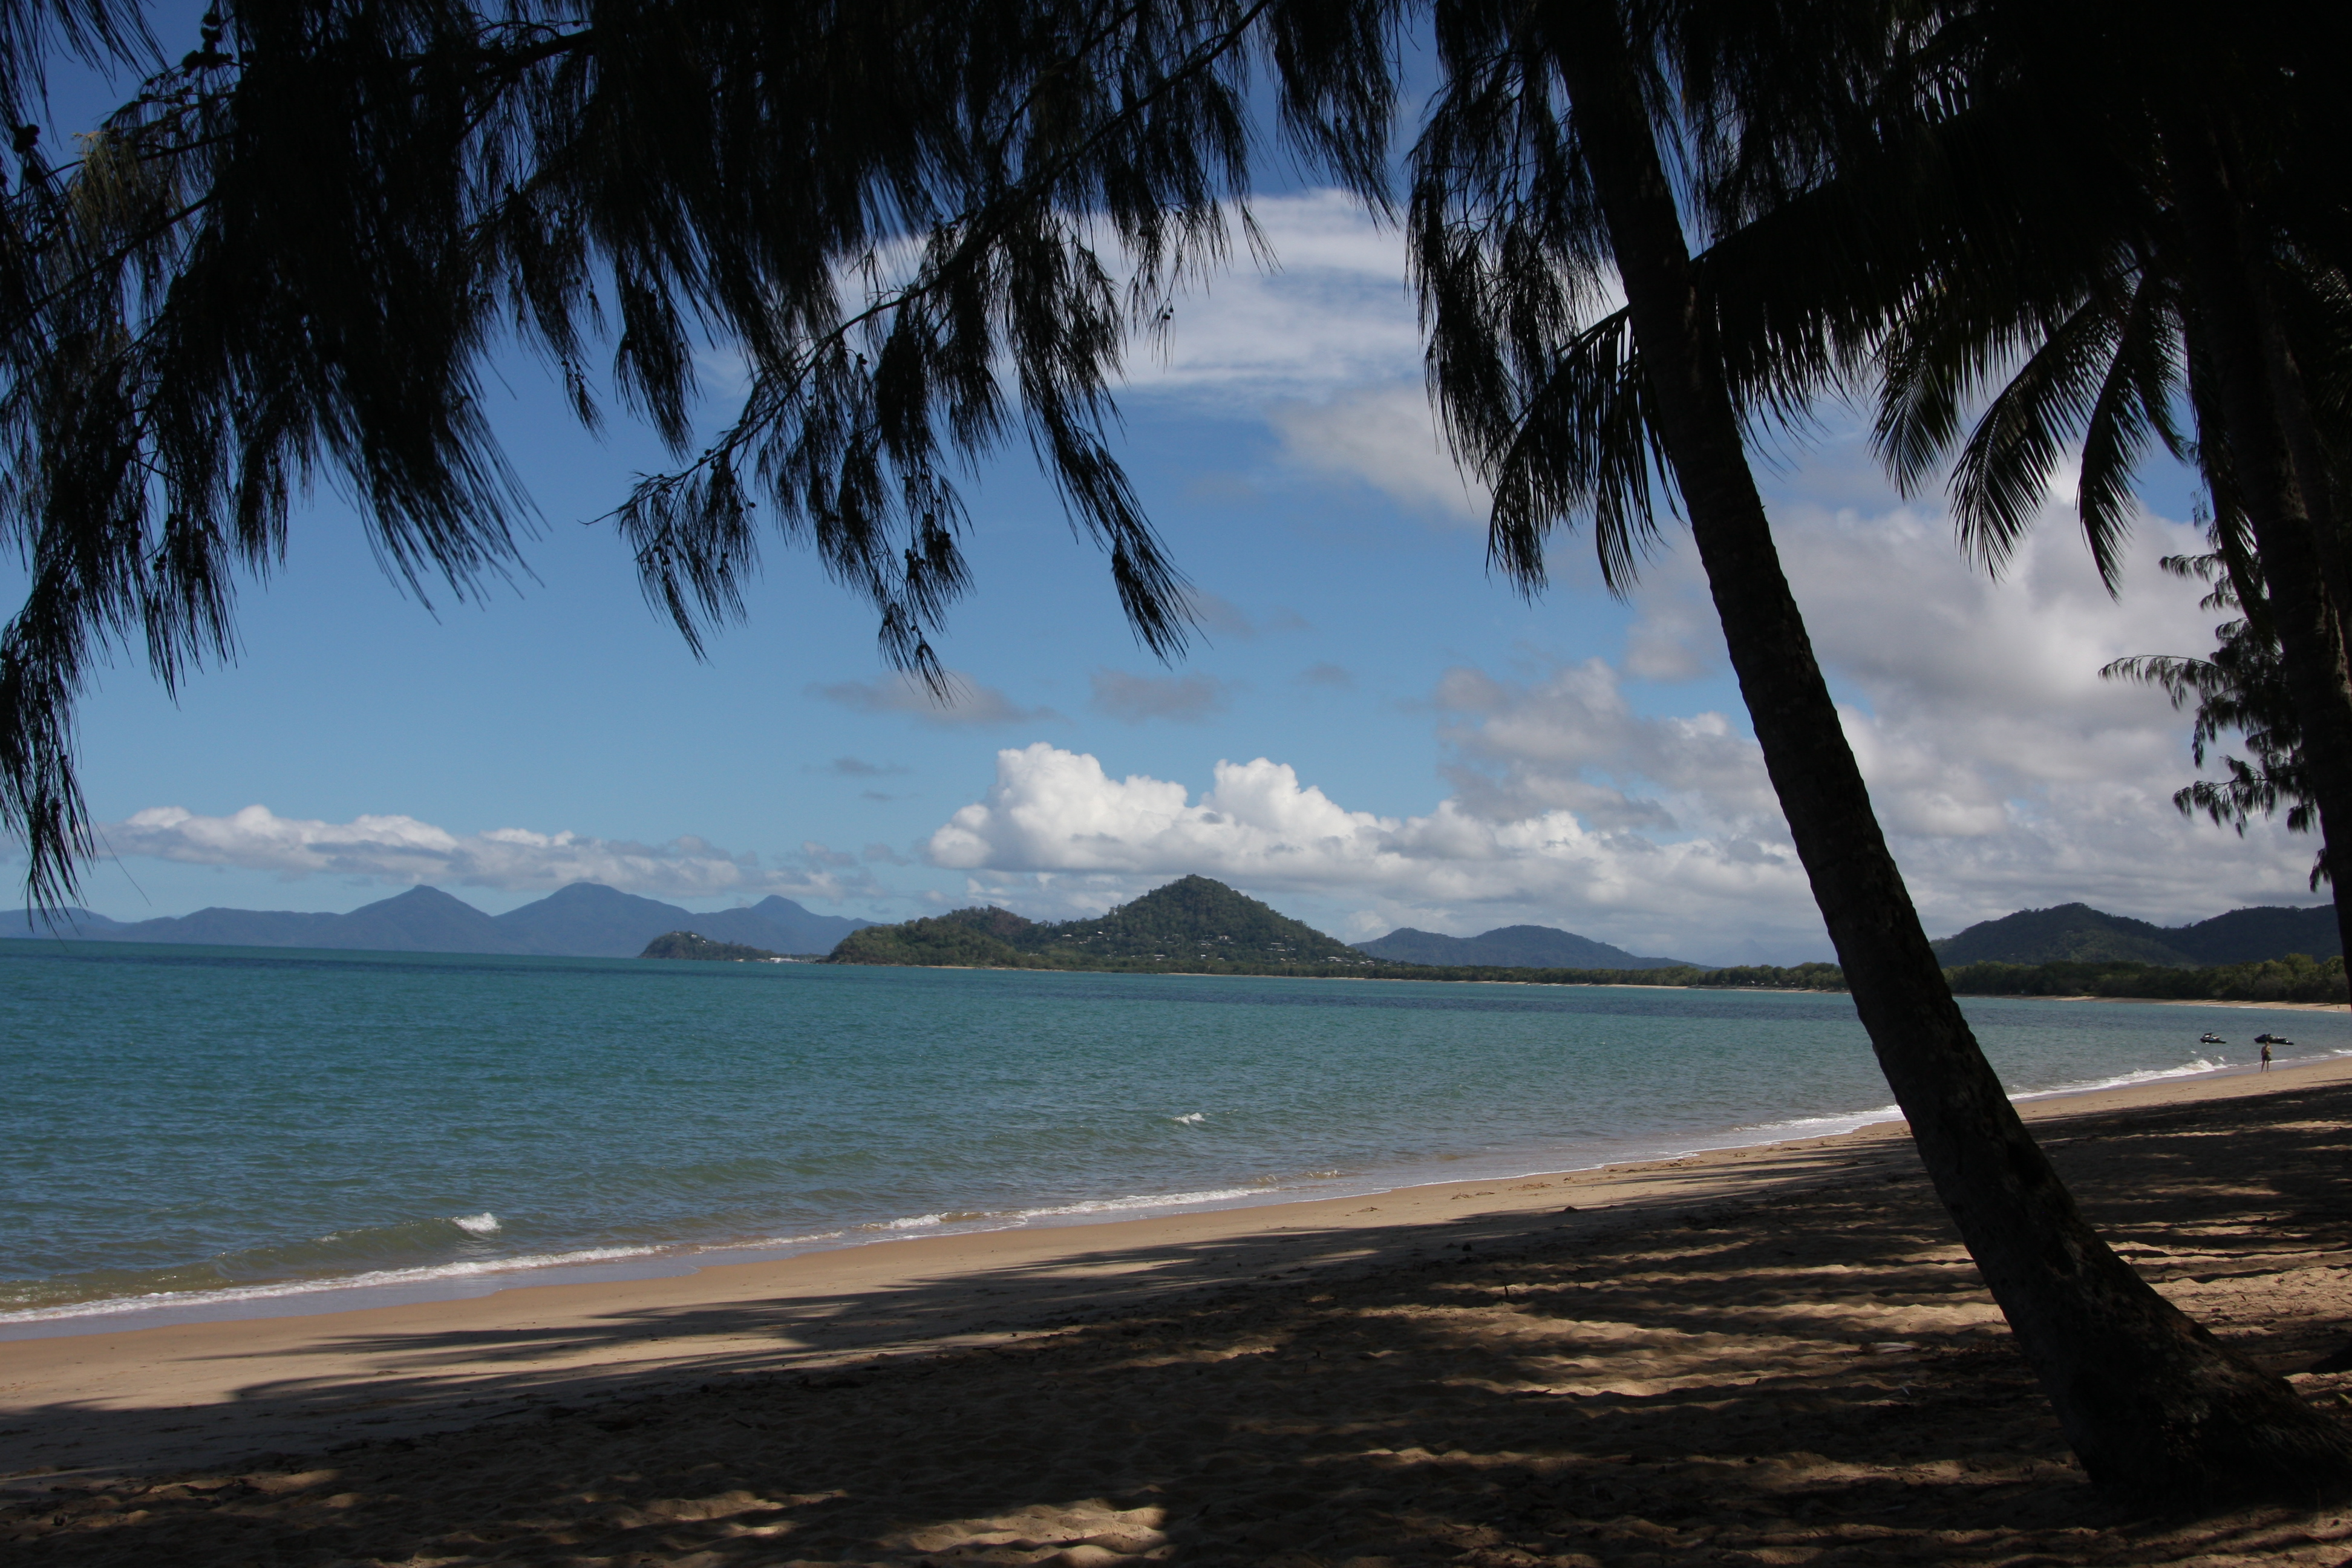 view of the ocean from the beach in Palm Cove